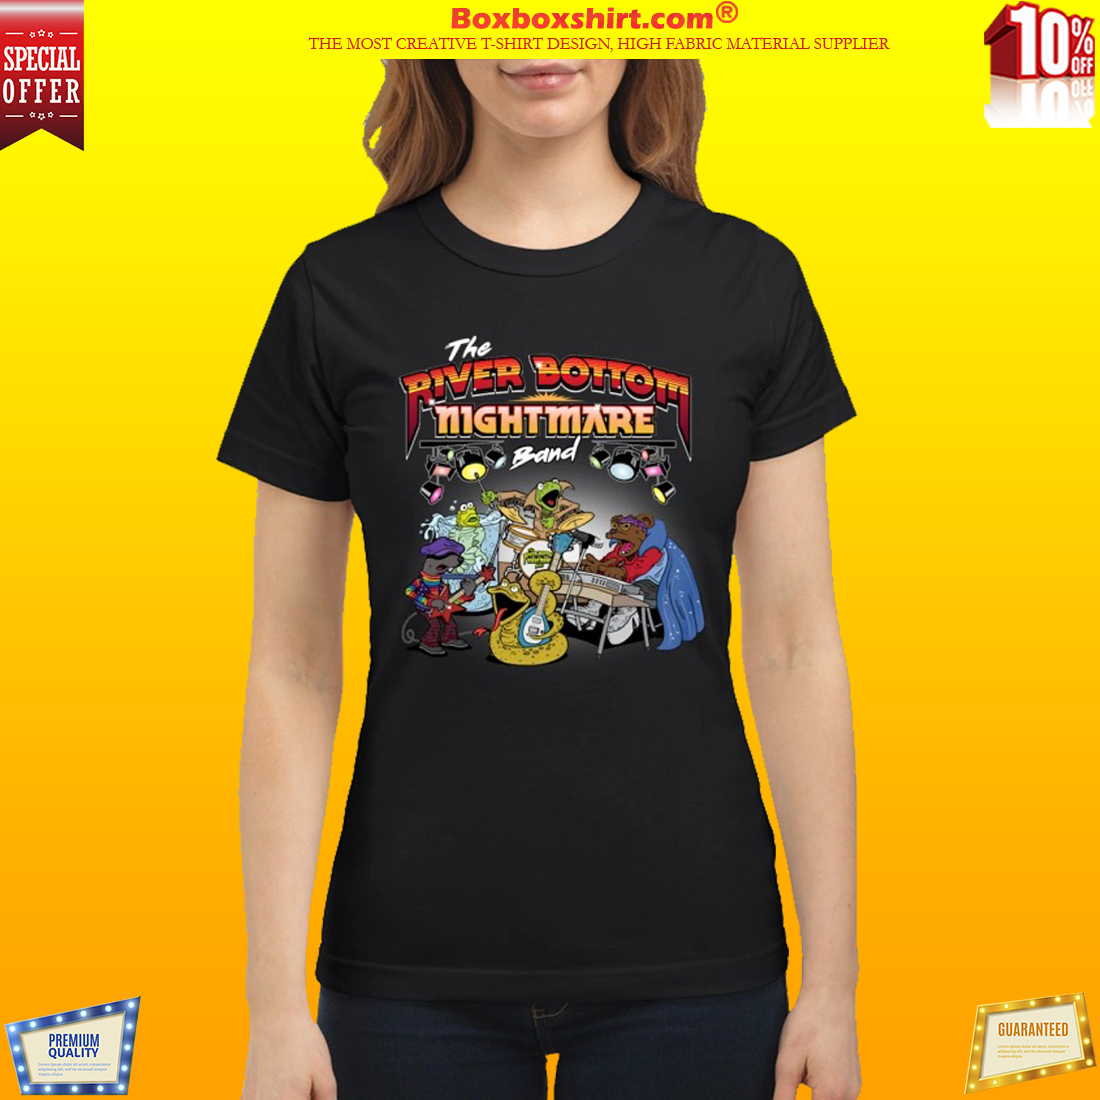 The riverbottom nightmare band shirt